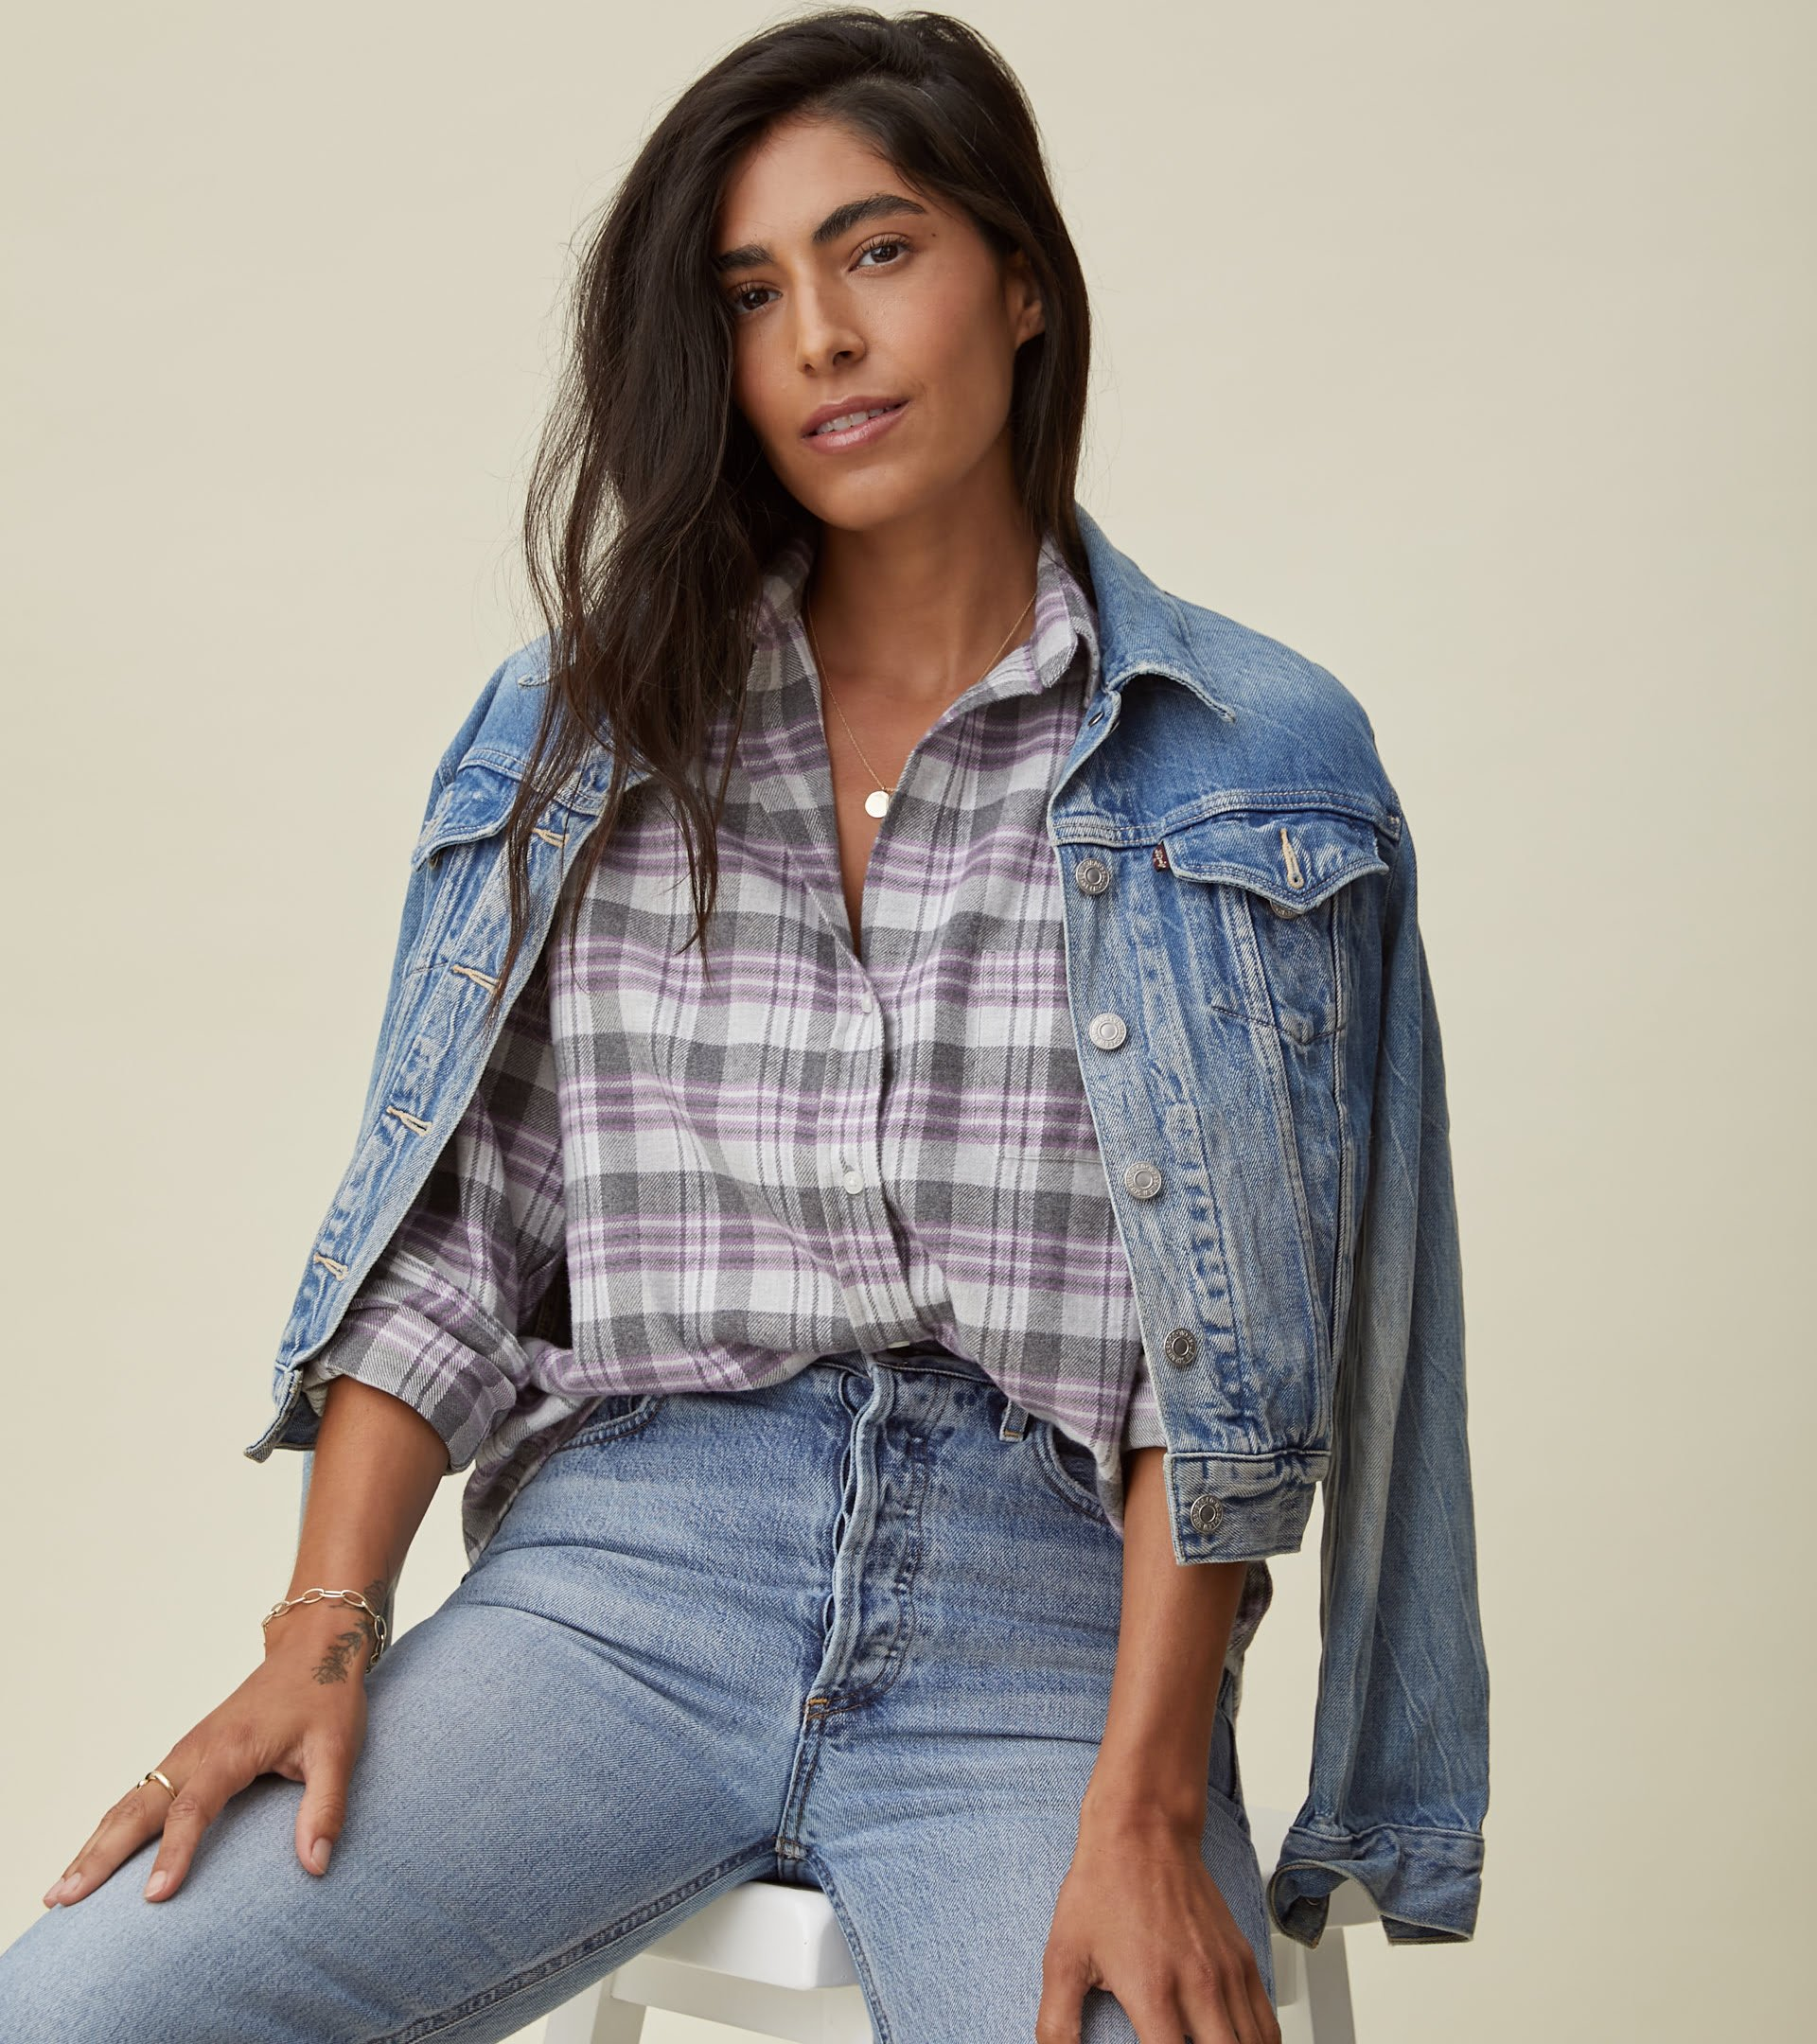 The Hero Button-Up Shirt Gray, White, and Purple Plaid, Plush Flannel view 1